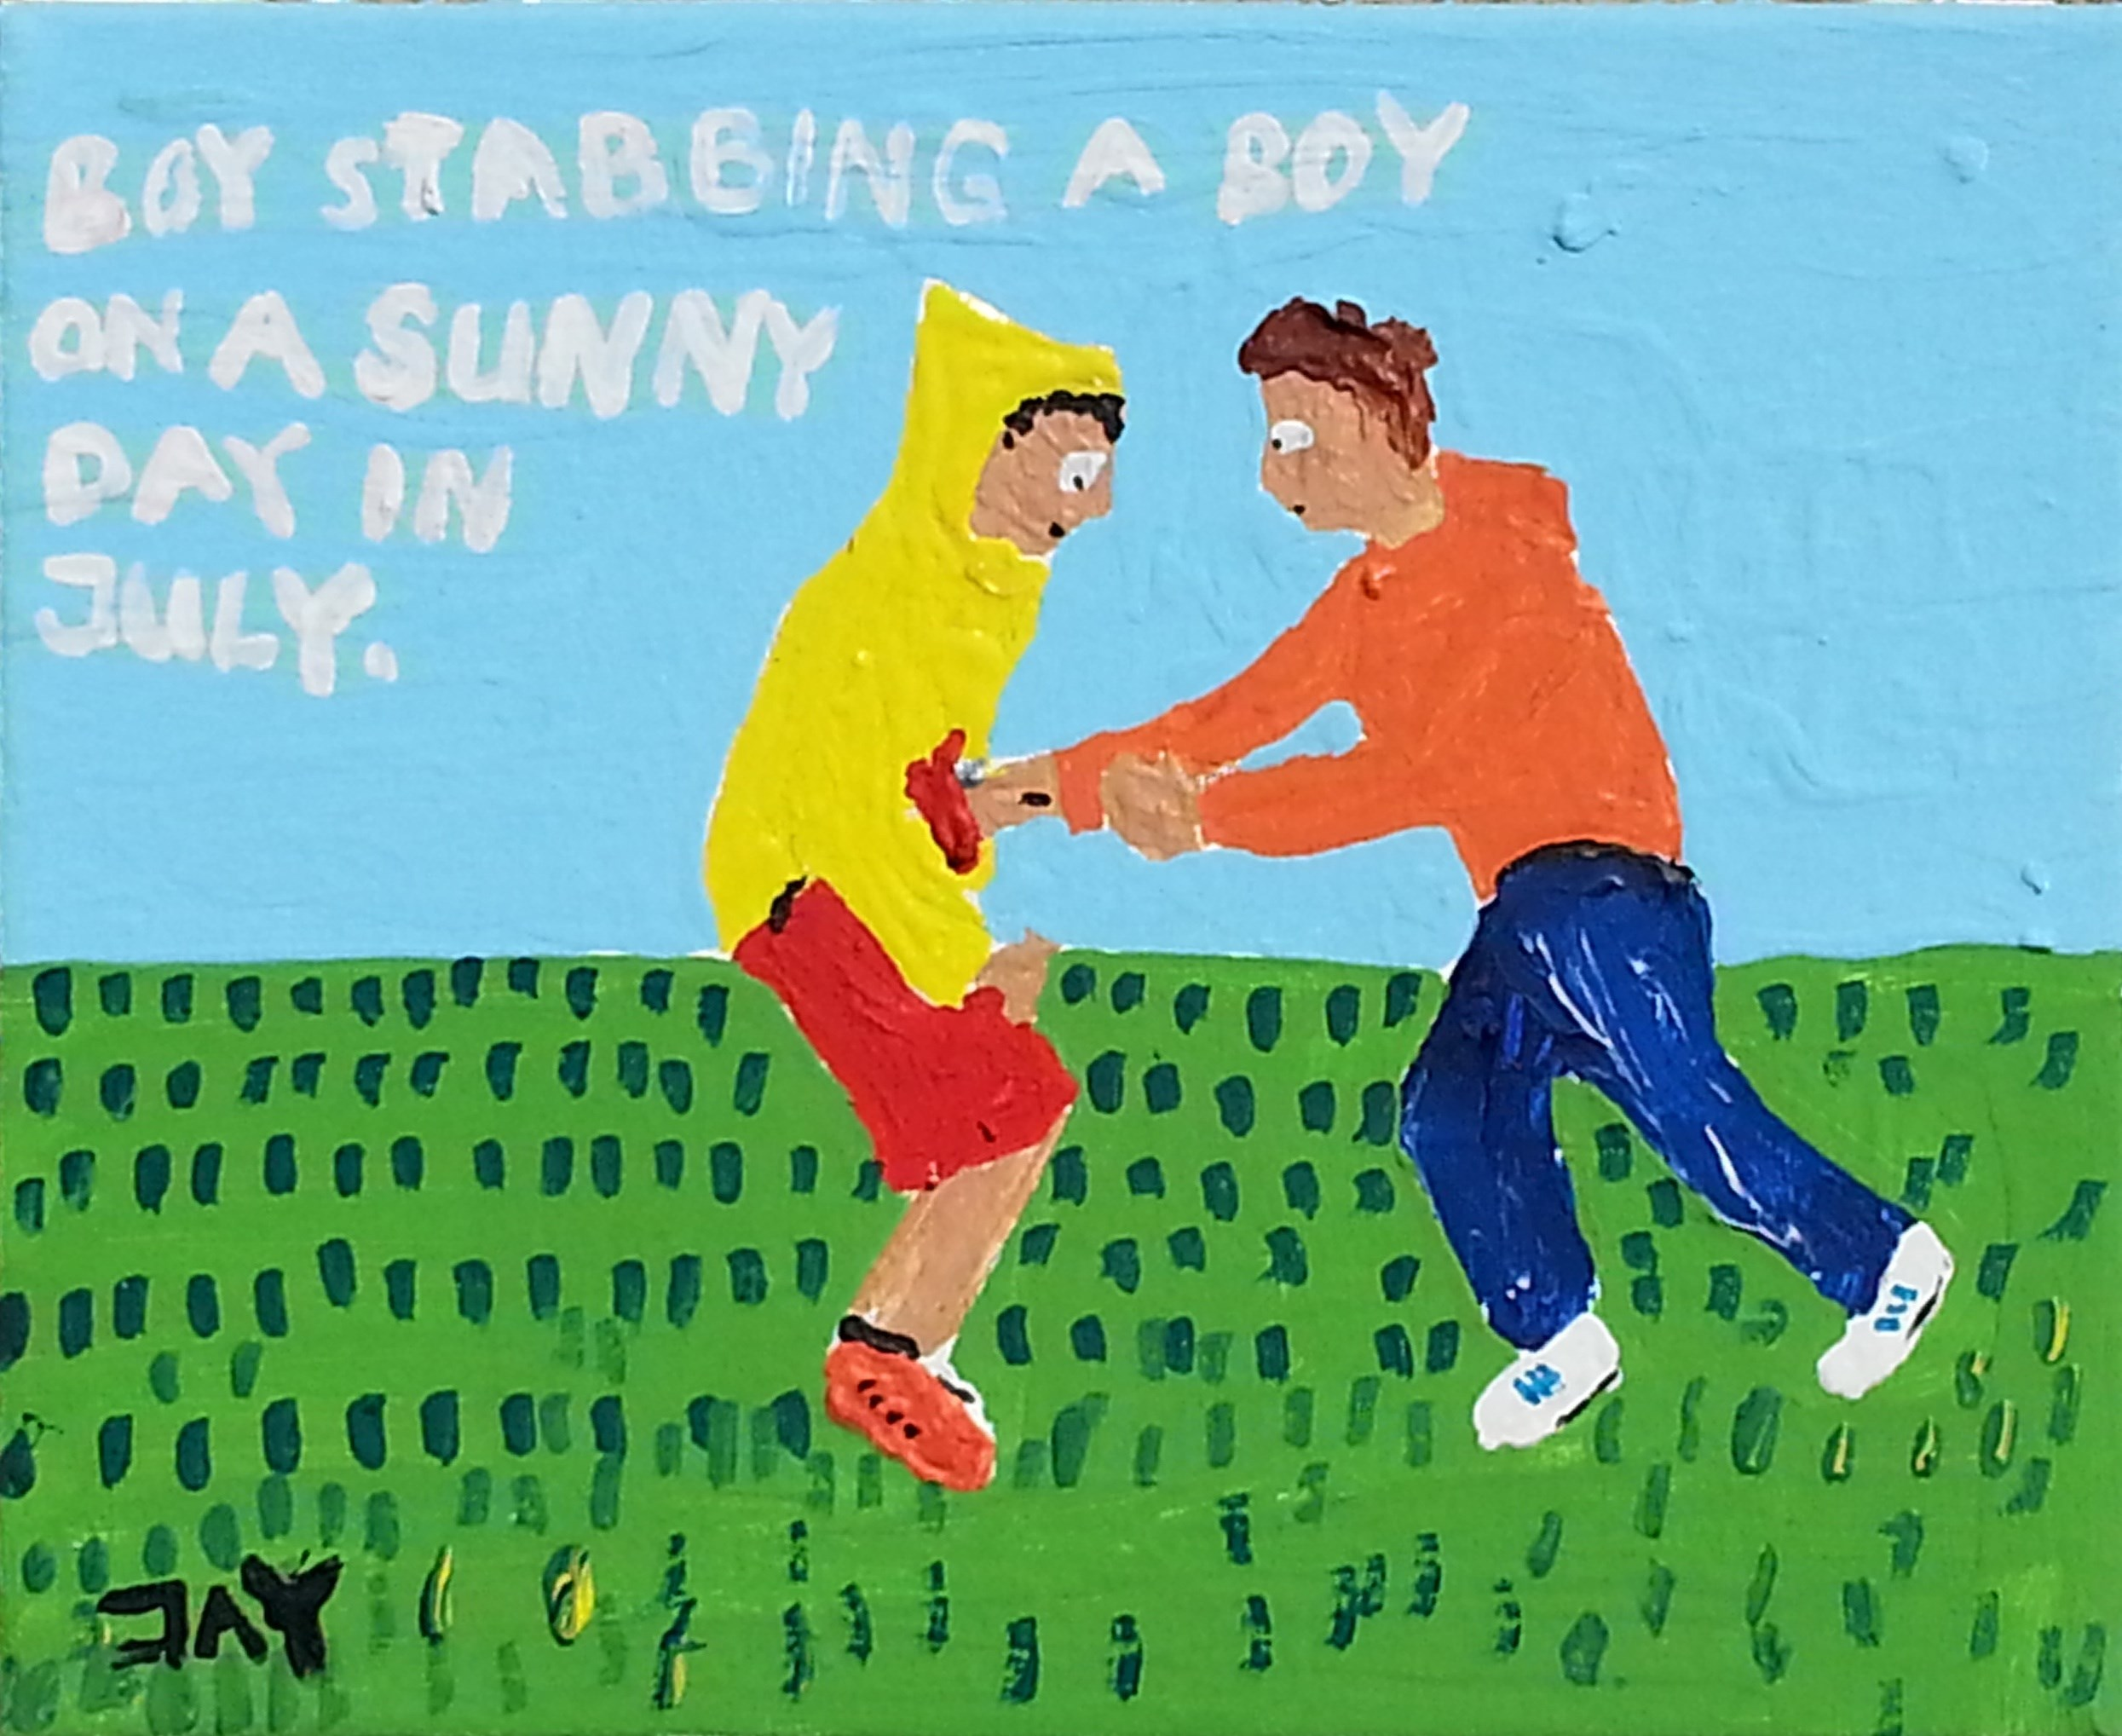 Boy stabbing a boy on a sunny day in July, Pintura Acrílico Vanguarda original por Jay Rechsteiner